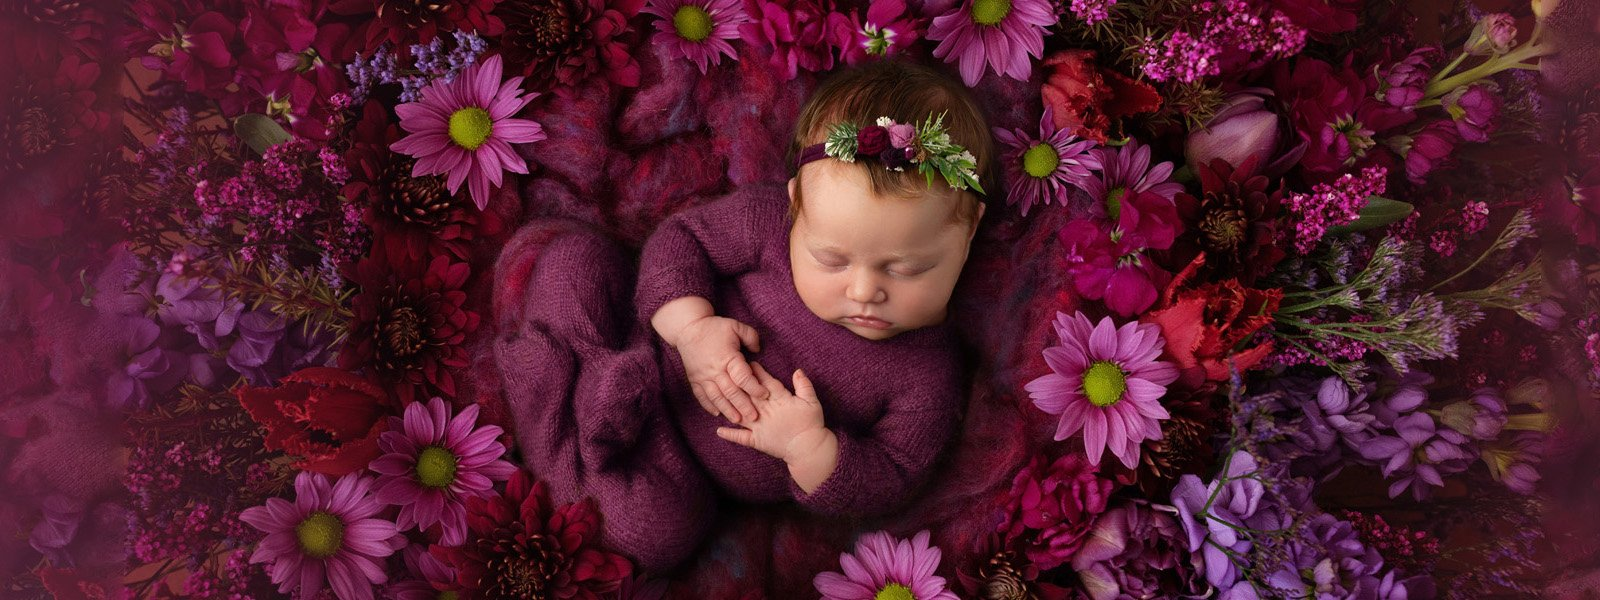 akron-ohio-newborn-photography-crop